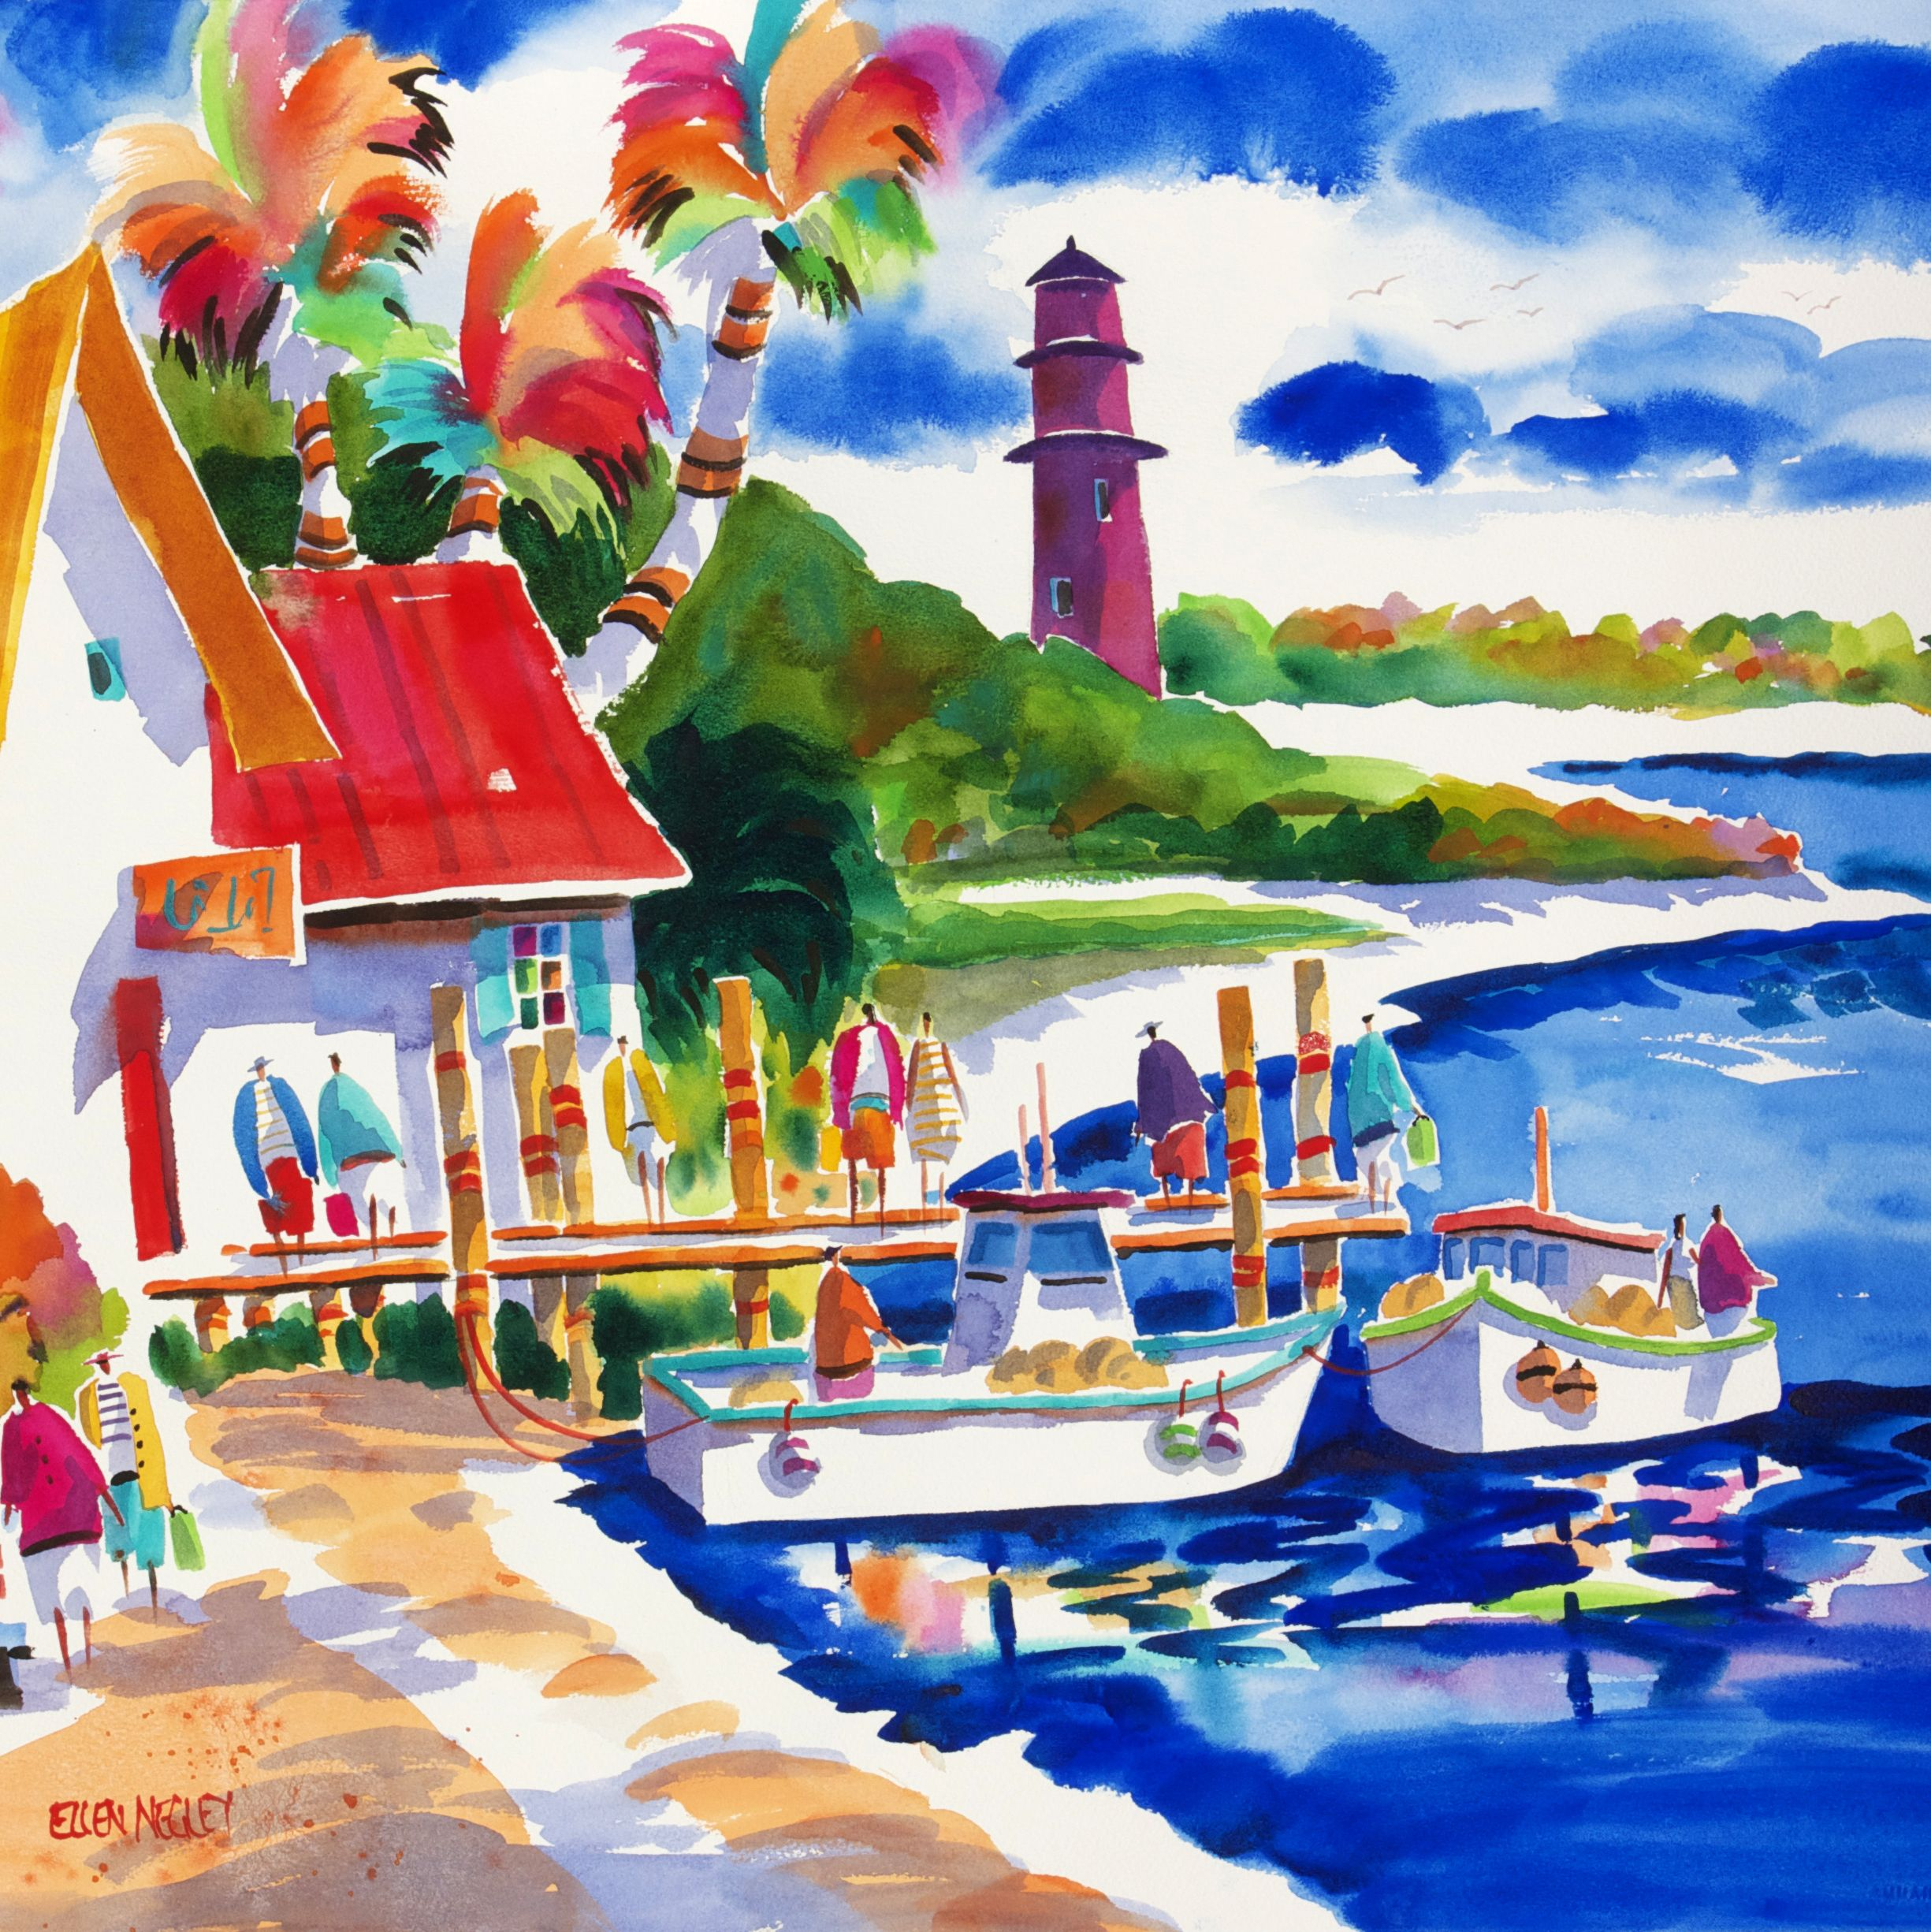 Island Arts The Brilliantly Vibrant Watercolors Of Ellen Negley